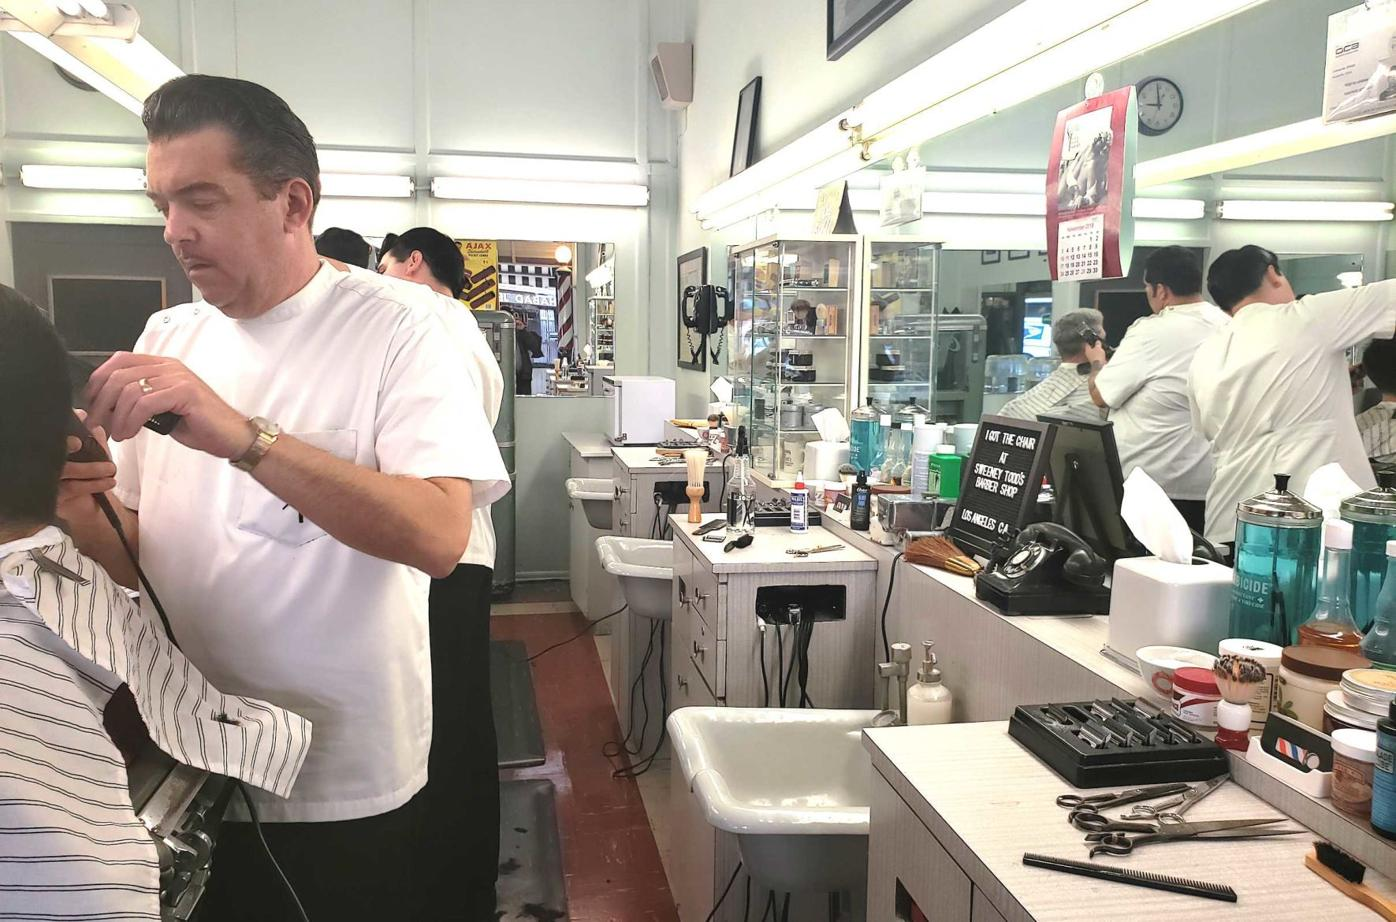 Todd Lahman, owner of Sweeney Todd's Barber Shop